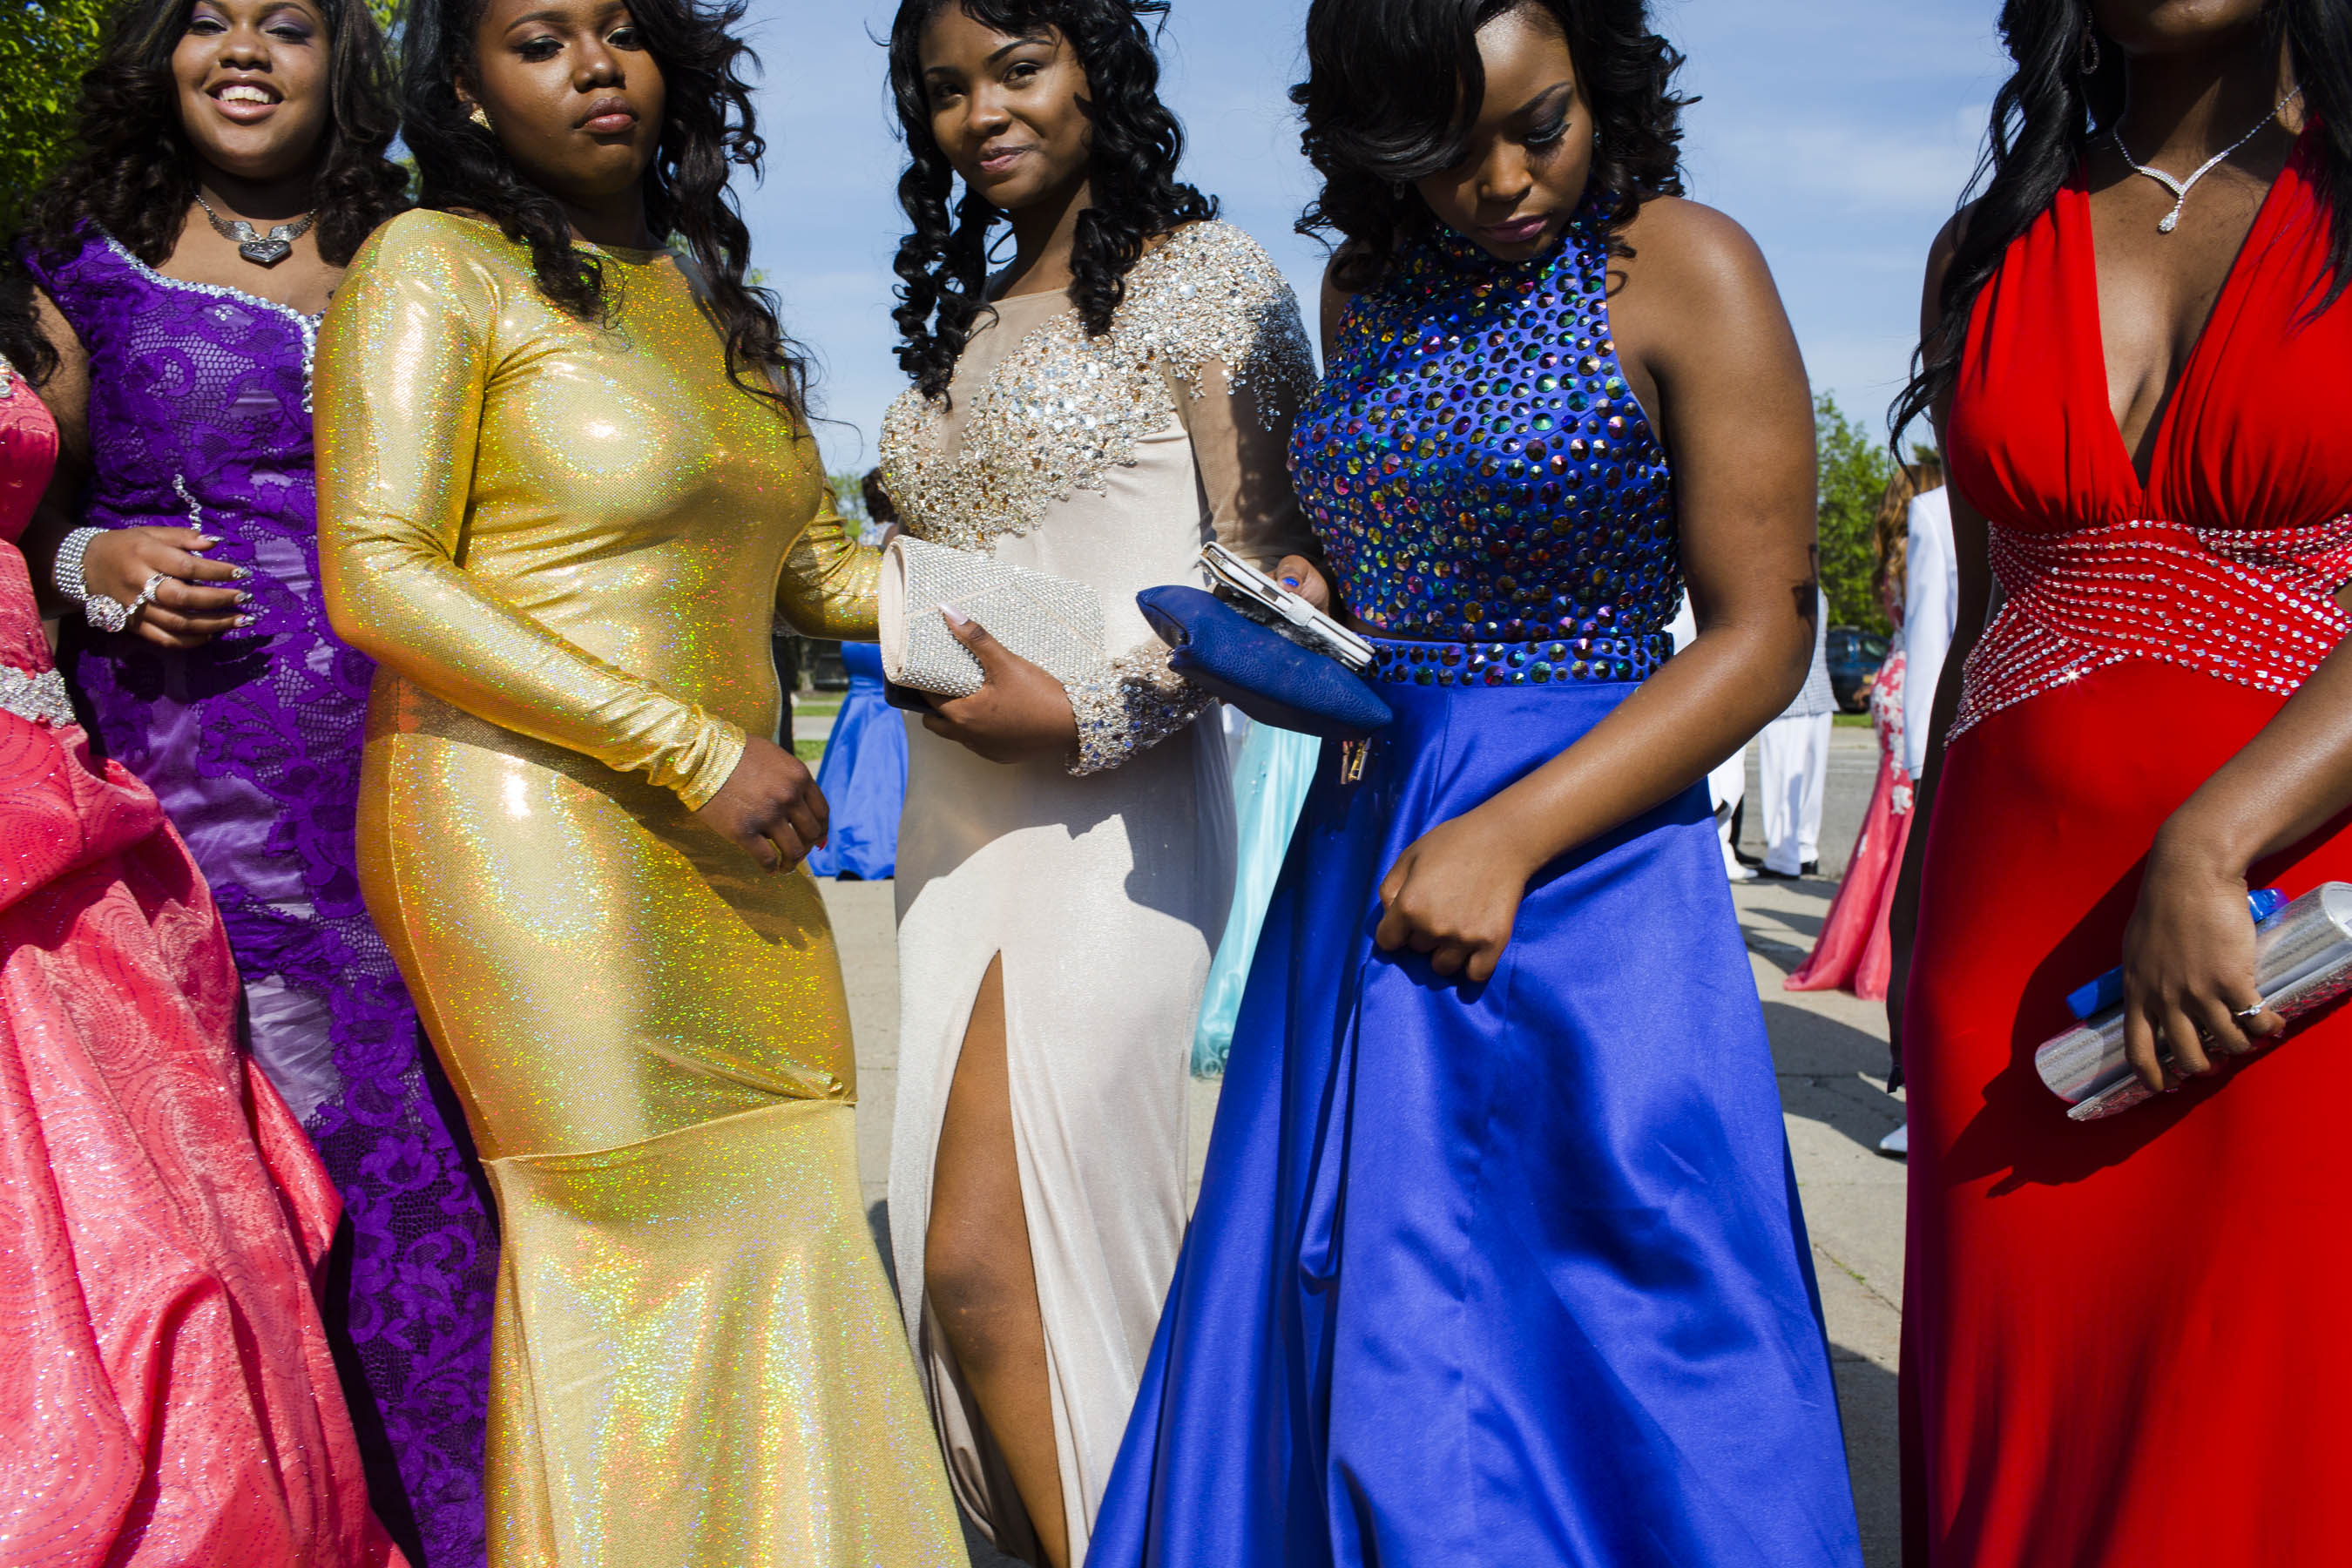 Northwestern High School students prepare for a group photo before their prom on Saturday, May 21, 2016 in Flint, Michigan.